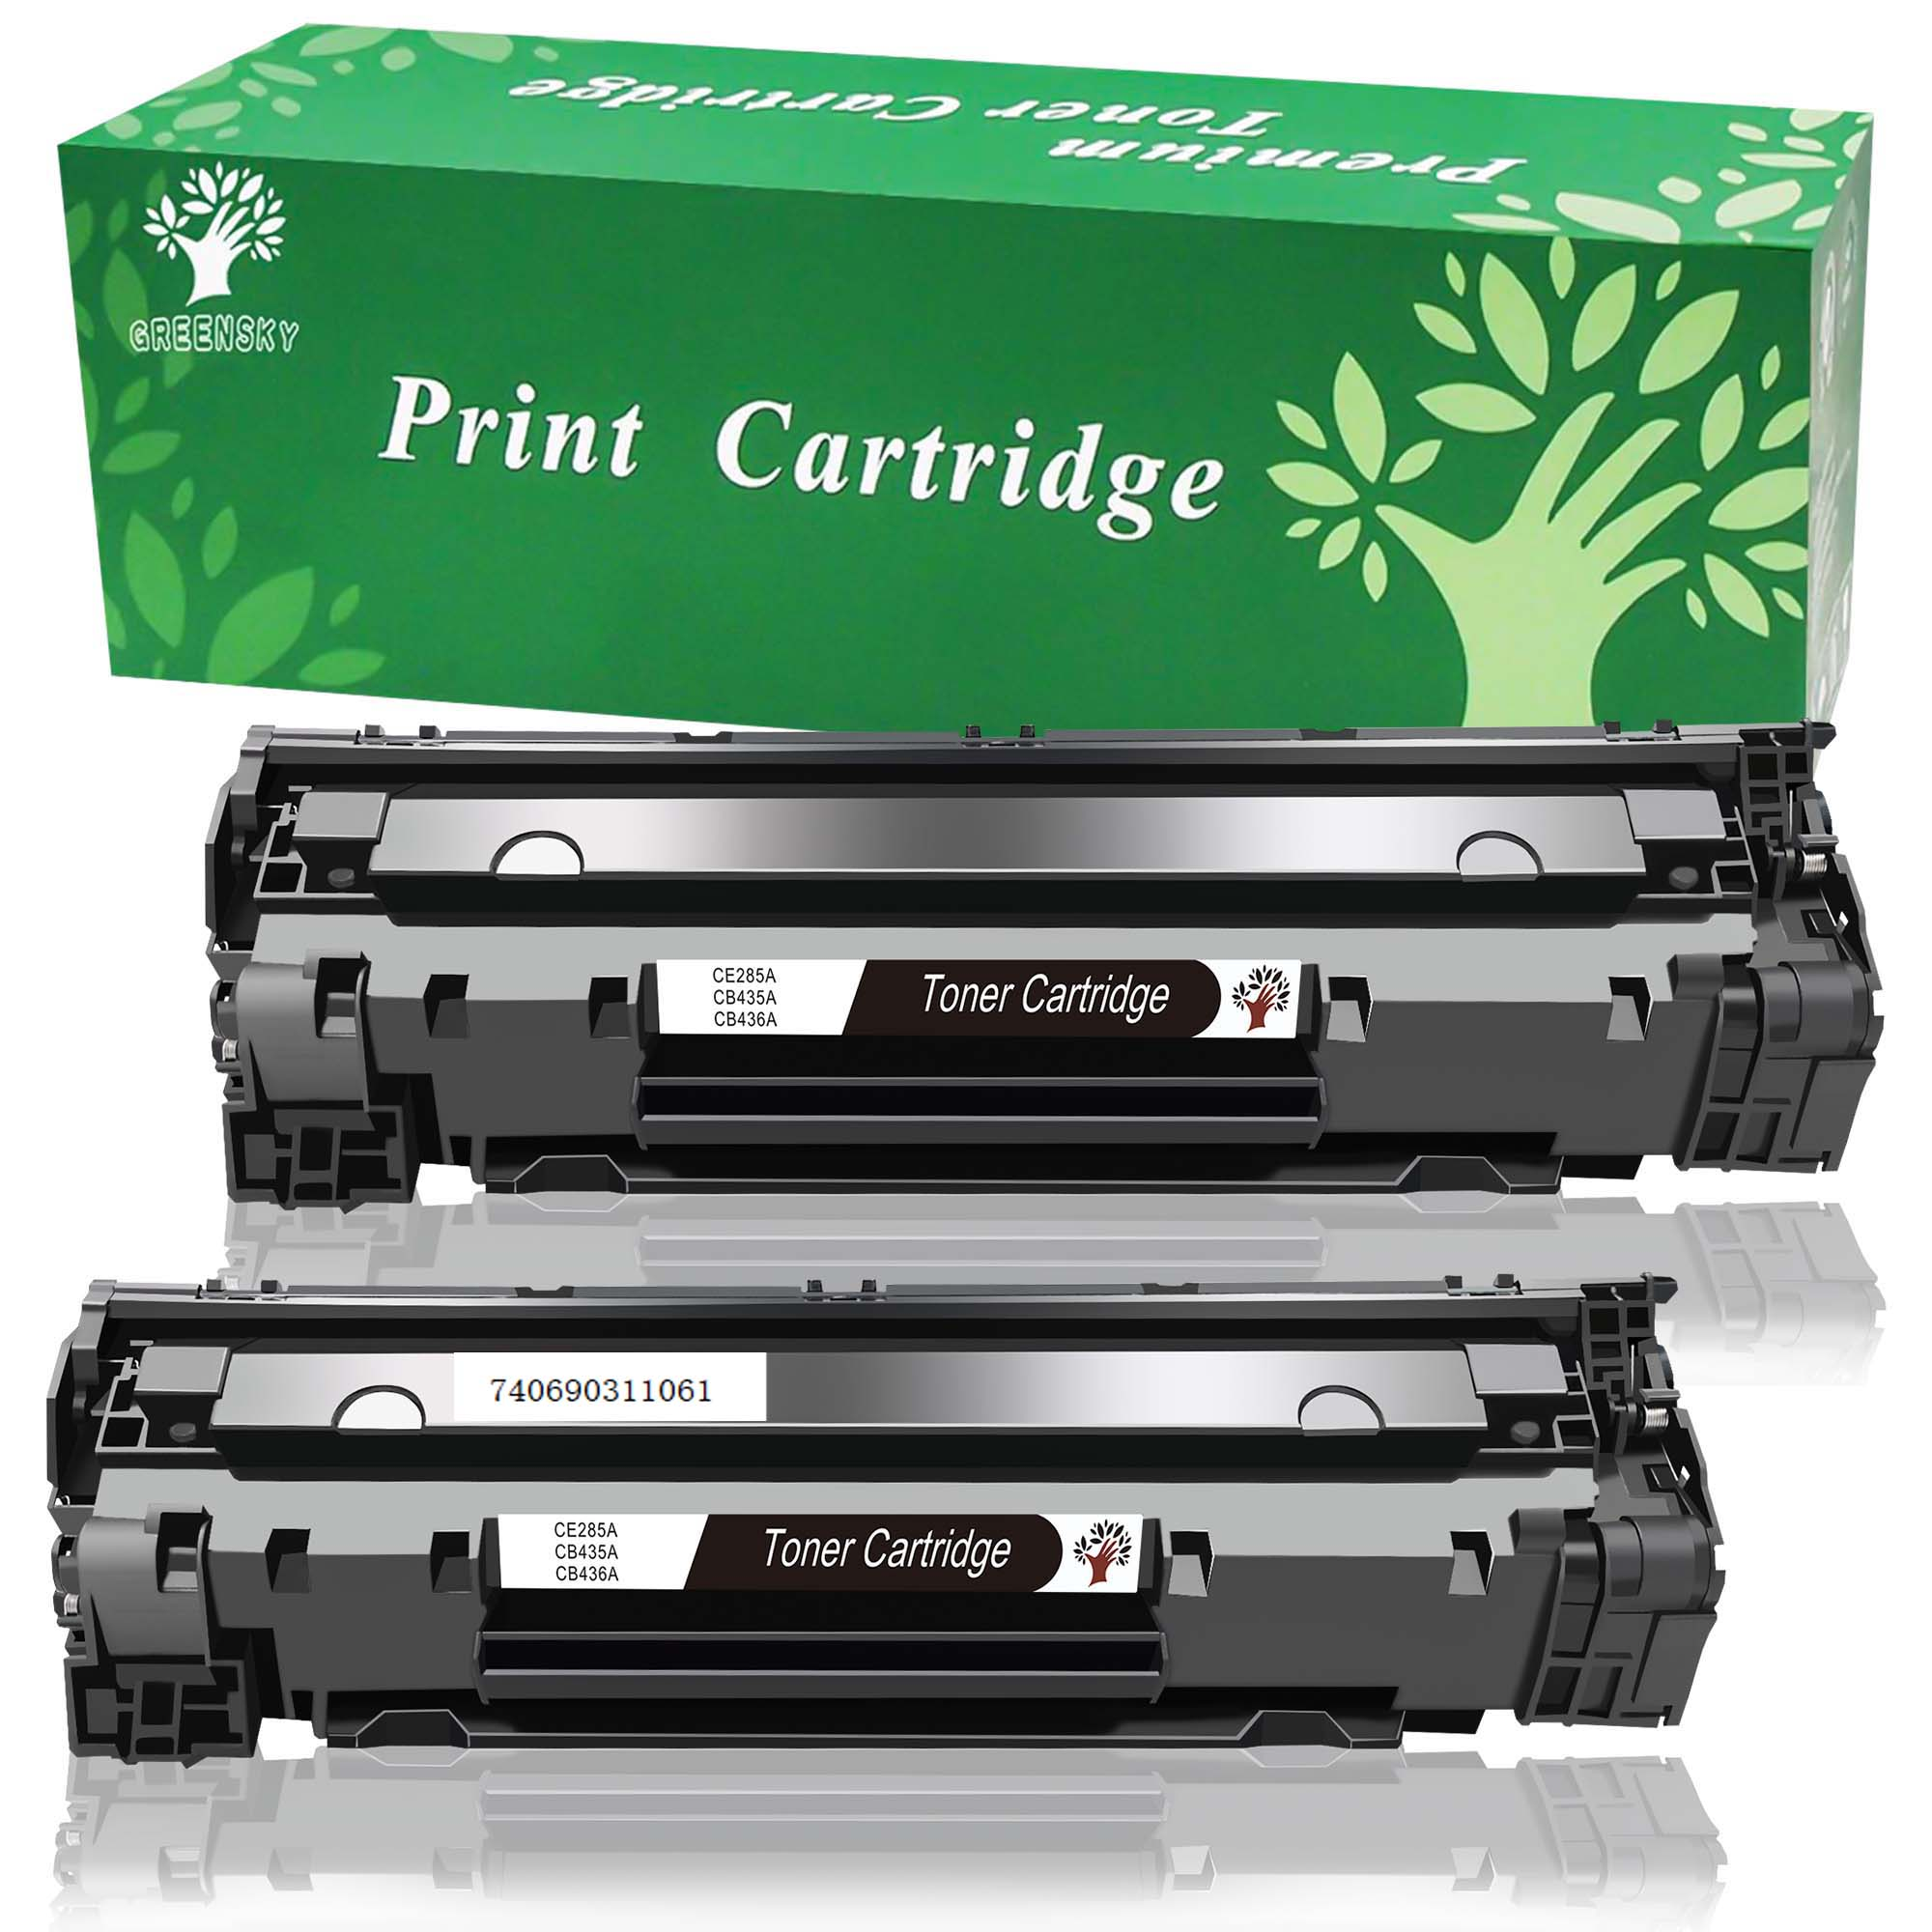 Greensky 2 Black Remanufactured Replacement Ce285a 85a Laser Toner Compatible Cartridge Printer P1102 Laserjet 1500 Page Yield For Jet P1005 P1006 P1102w Series Printers